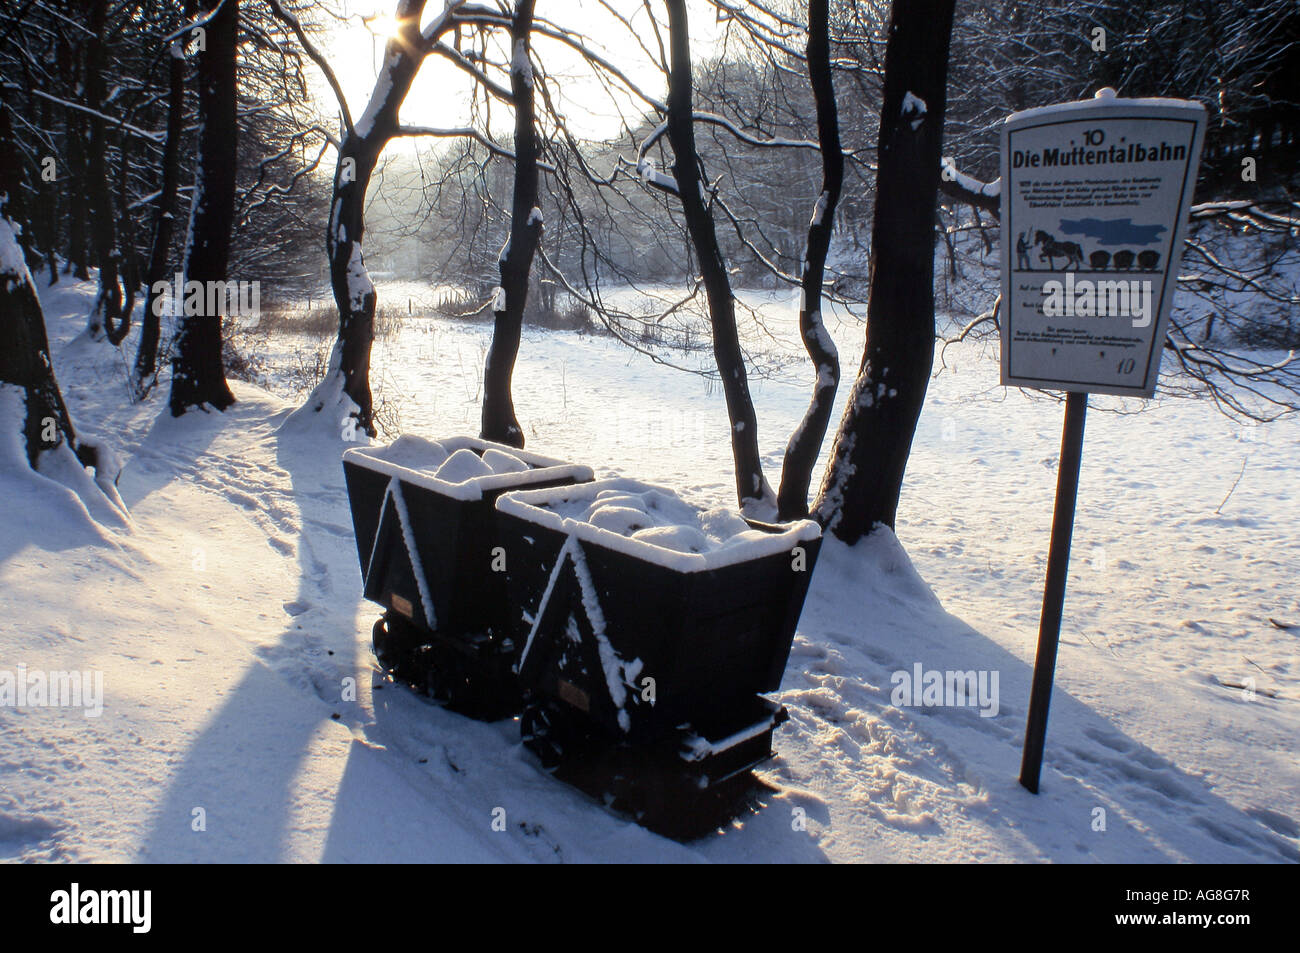 waggons of the Mutten Valley Train in winter with snow, Germany, North Rhine-Westphalia, Ruhr Area, Witten-Bommern - Stock Image